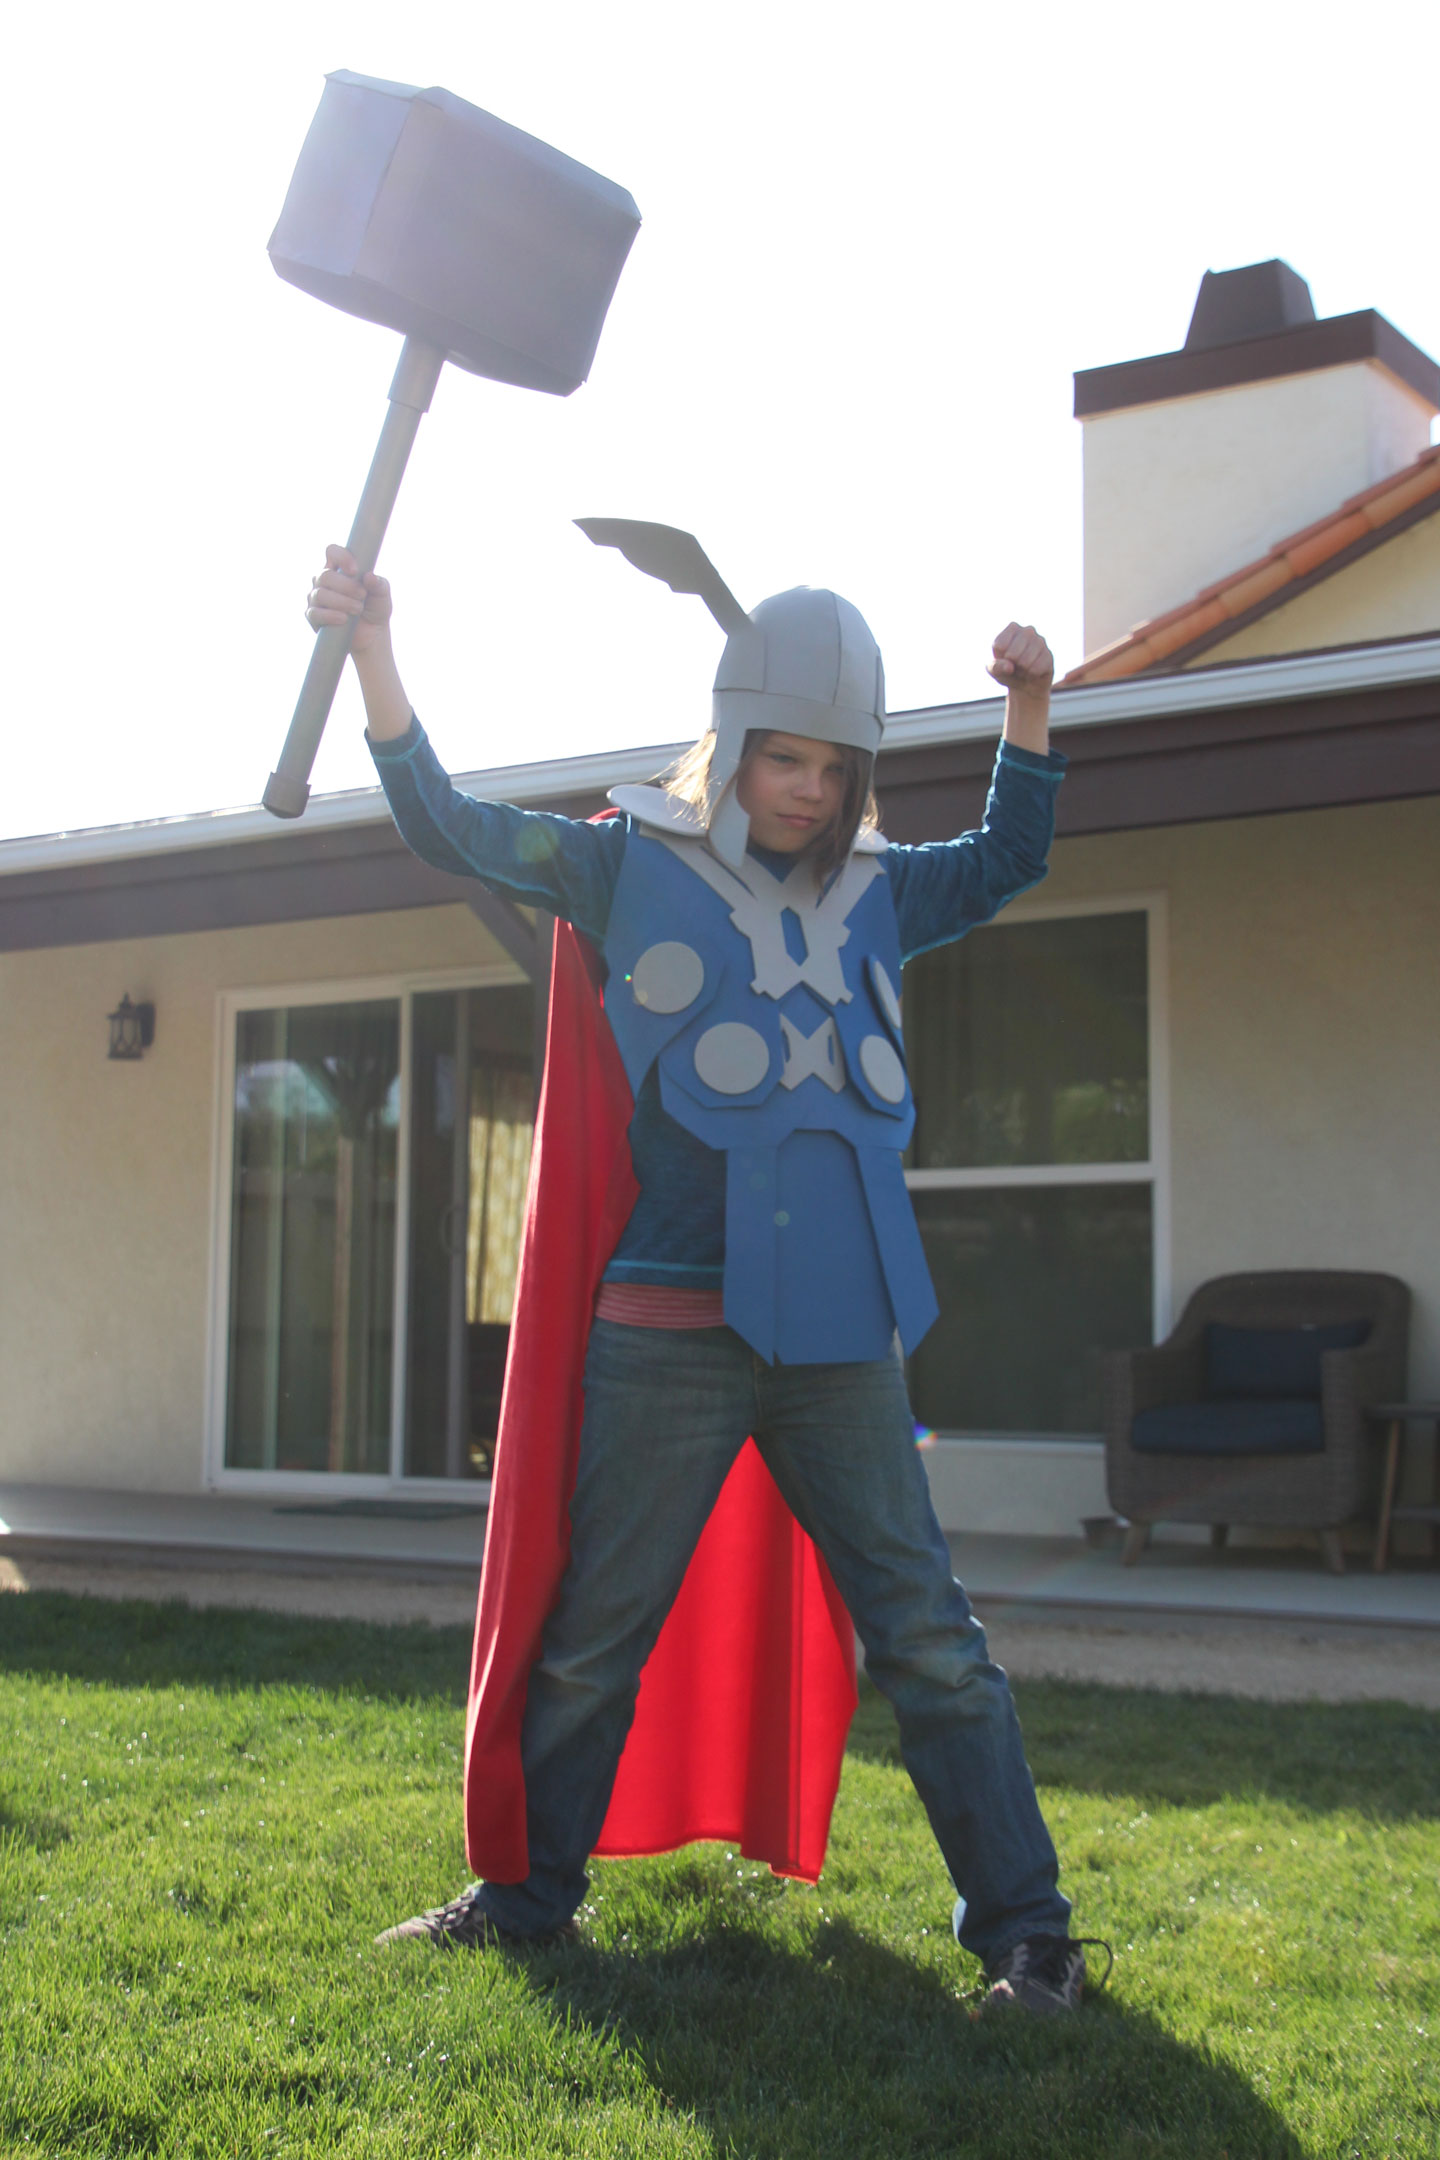 No sew diy thor costume that you can make right now no sew diy thor costume solutioingenieria Gallery